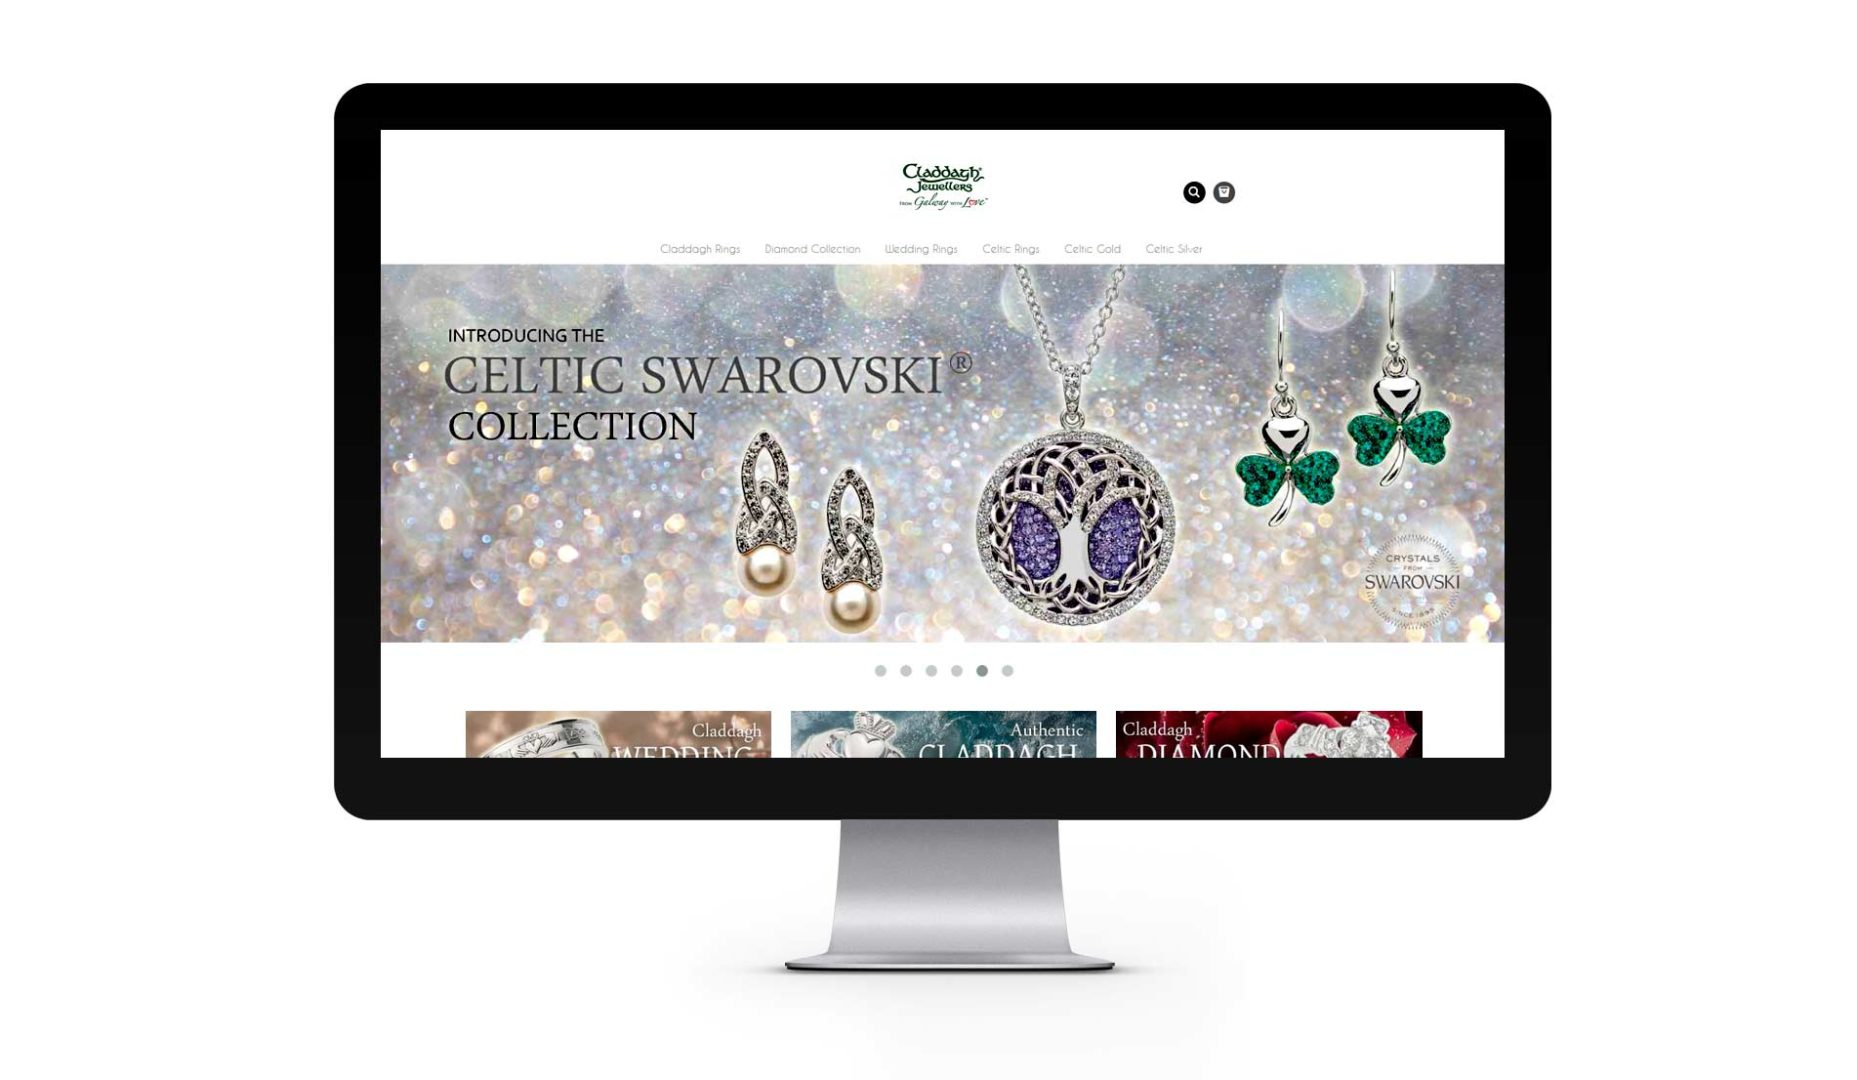 jewellery-magento-home-page-layout-on-imac